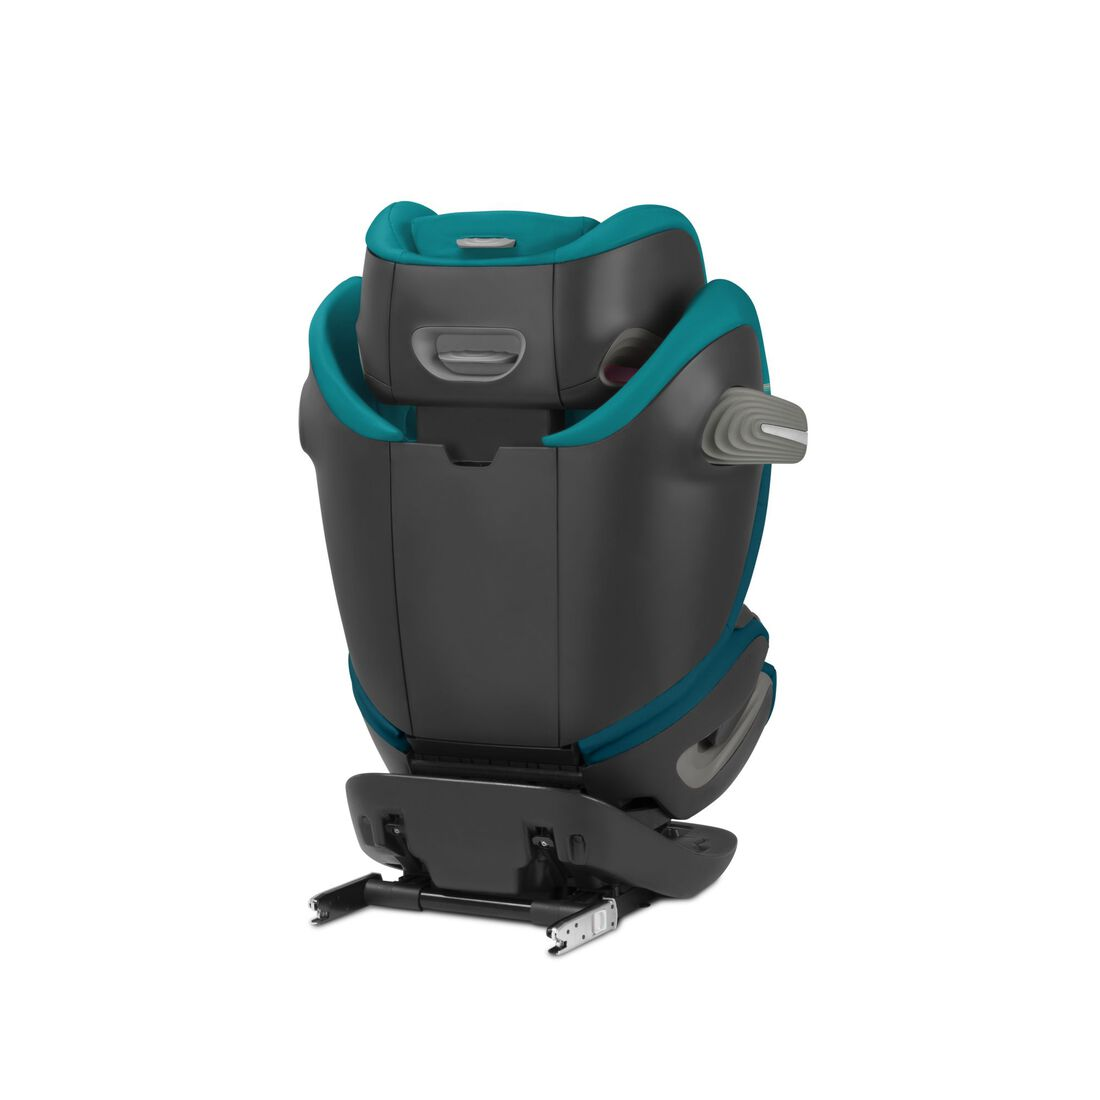 CYBEX Pallas S-fix - River Blue in River Blue large image number 4